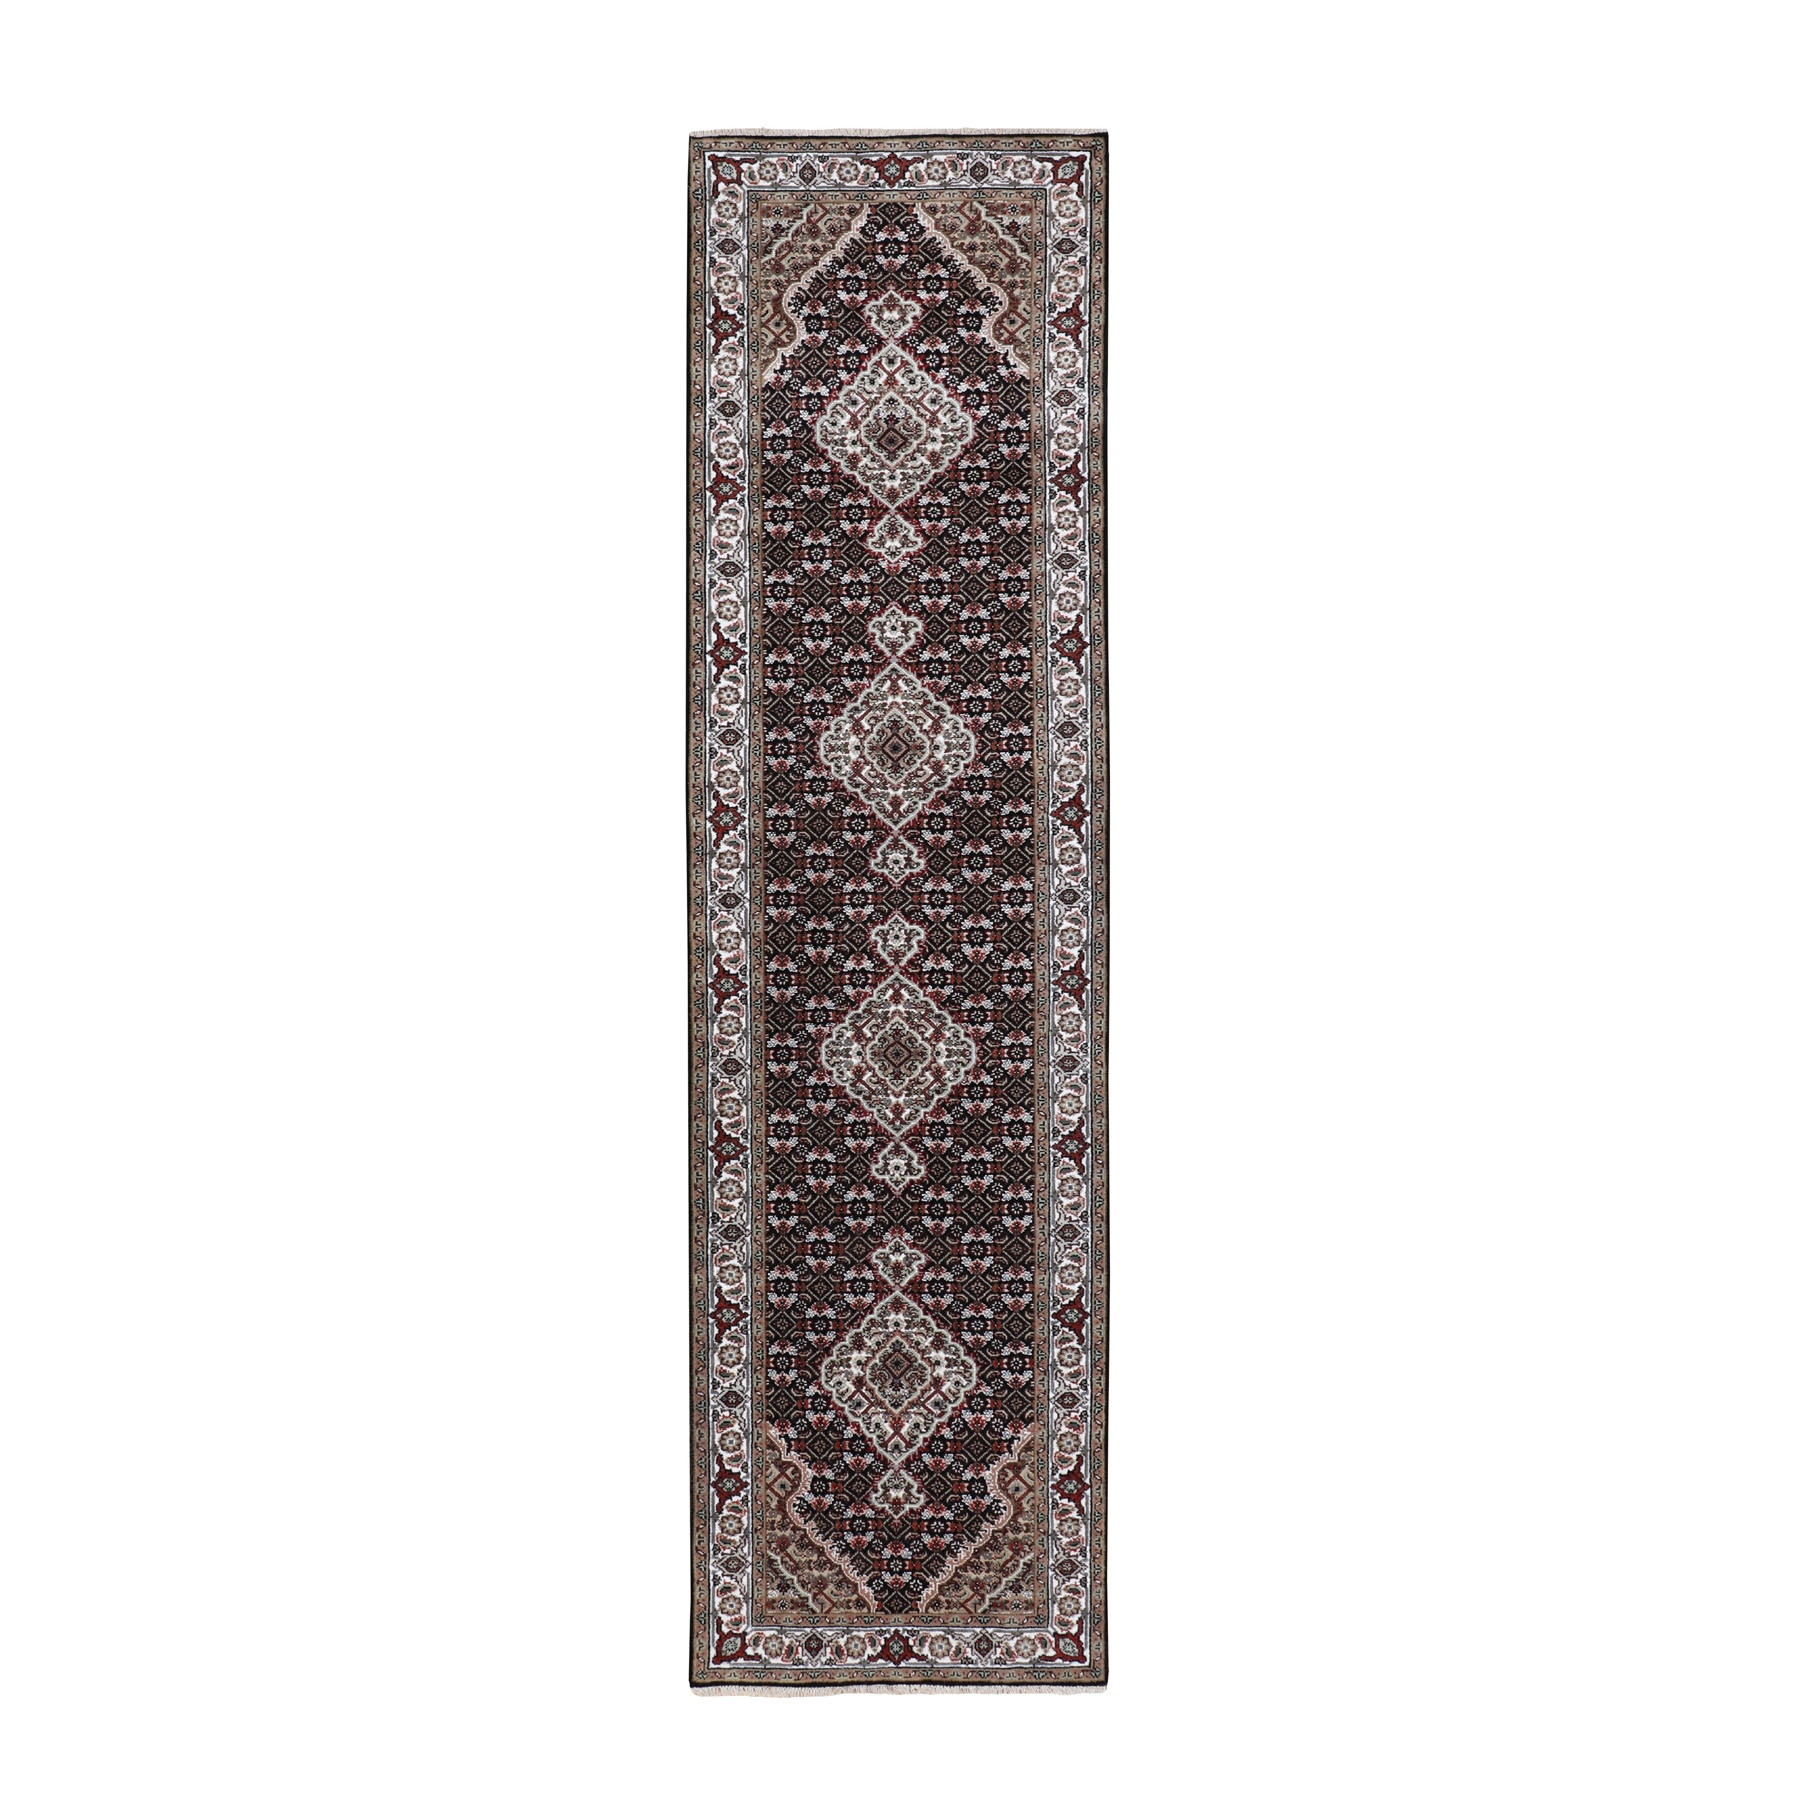 Pirniakan Collection Hand Knotted Black Rug No: 01116588